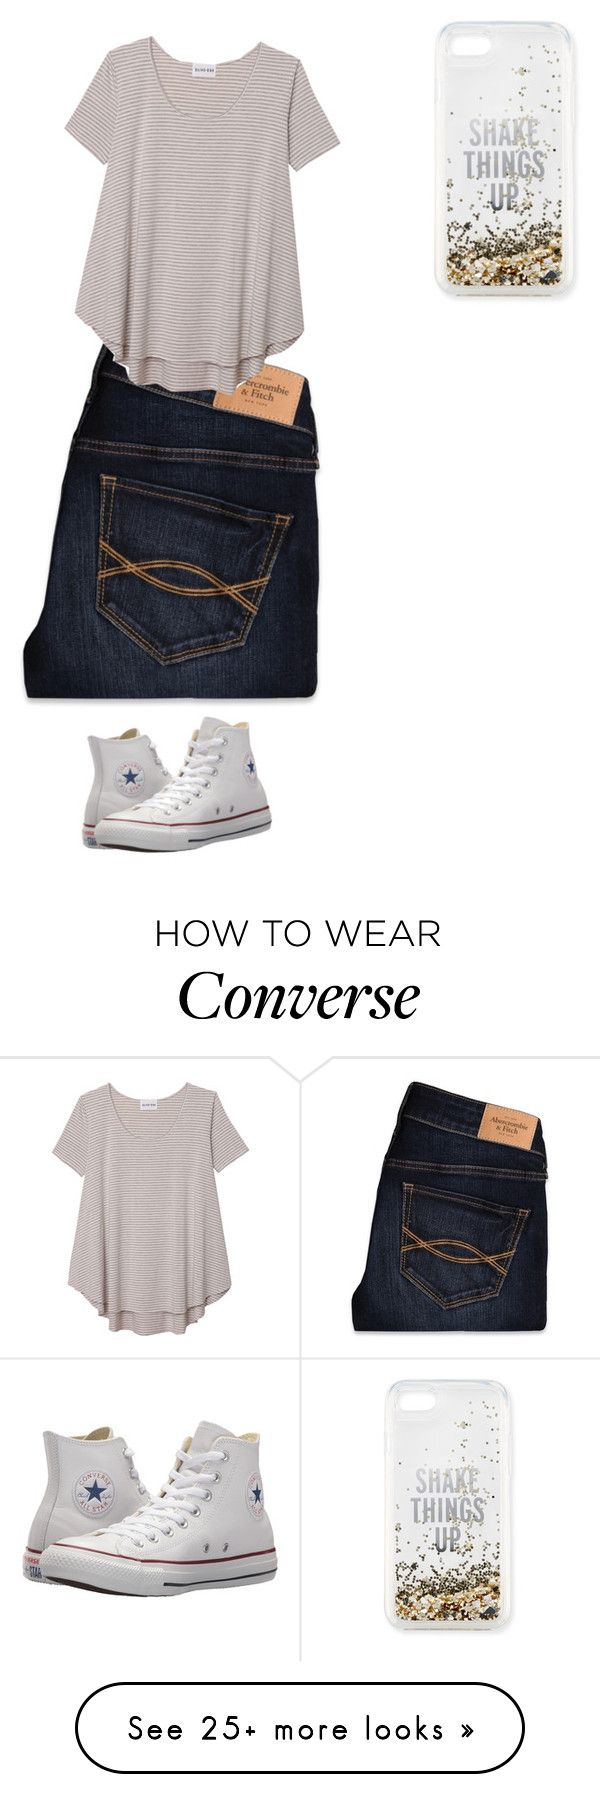 """Untitled #3474"" by pinki123456 on Polyvore featuring Kate Spade, Abercrombie & Fitch, Olive + Oak and Converse"